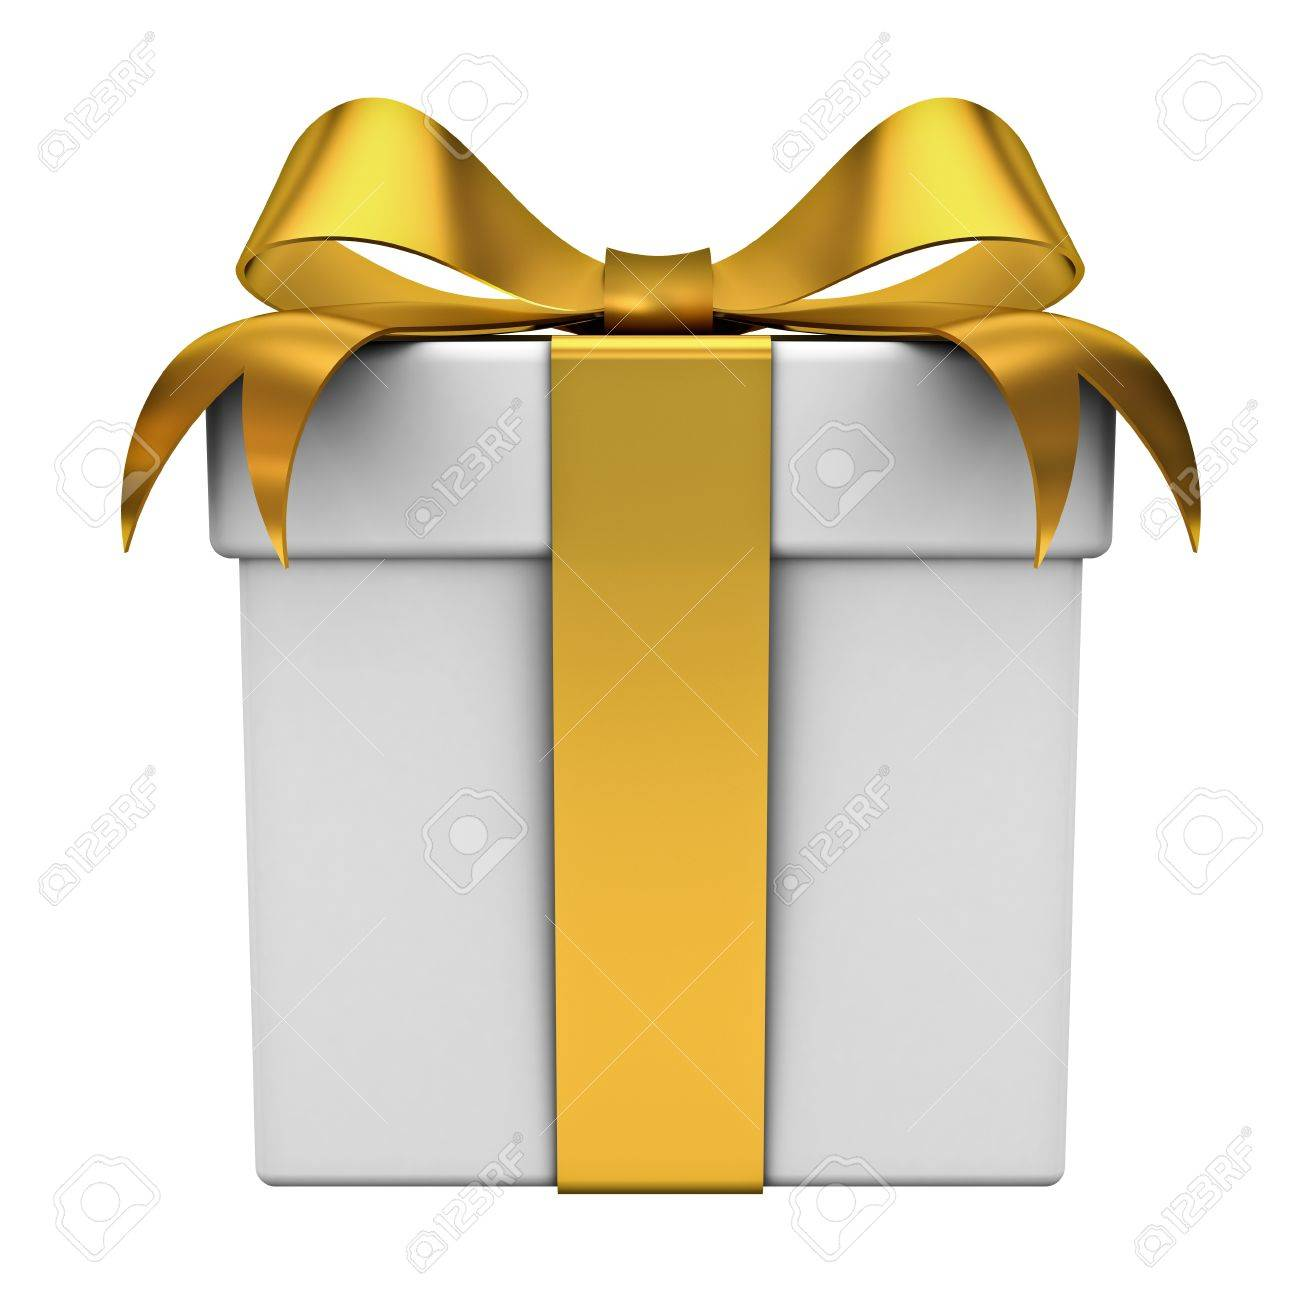 Gift box with golden ribbon bow on white background Stock Photo - 12432579